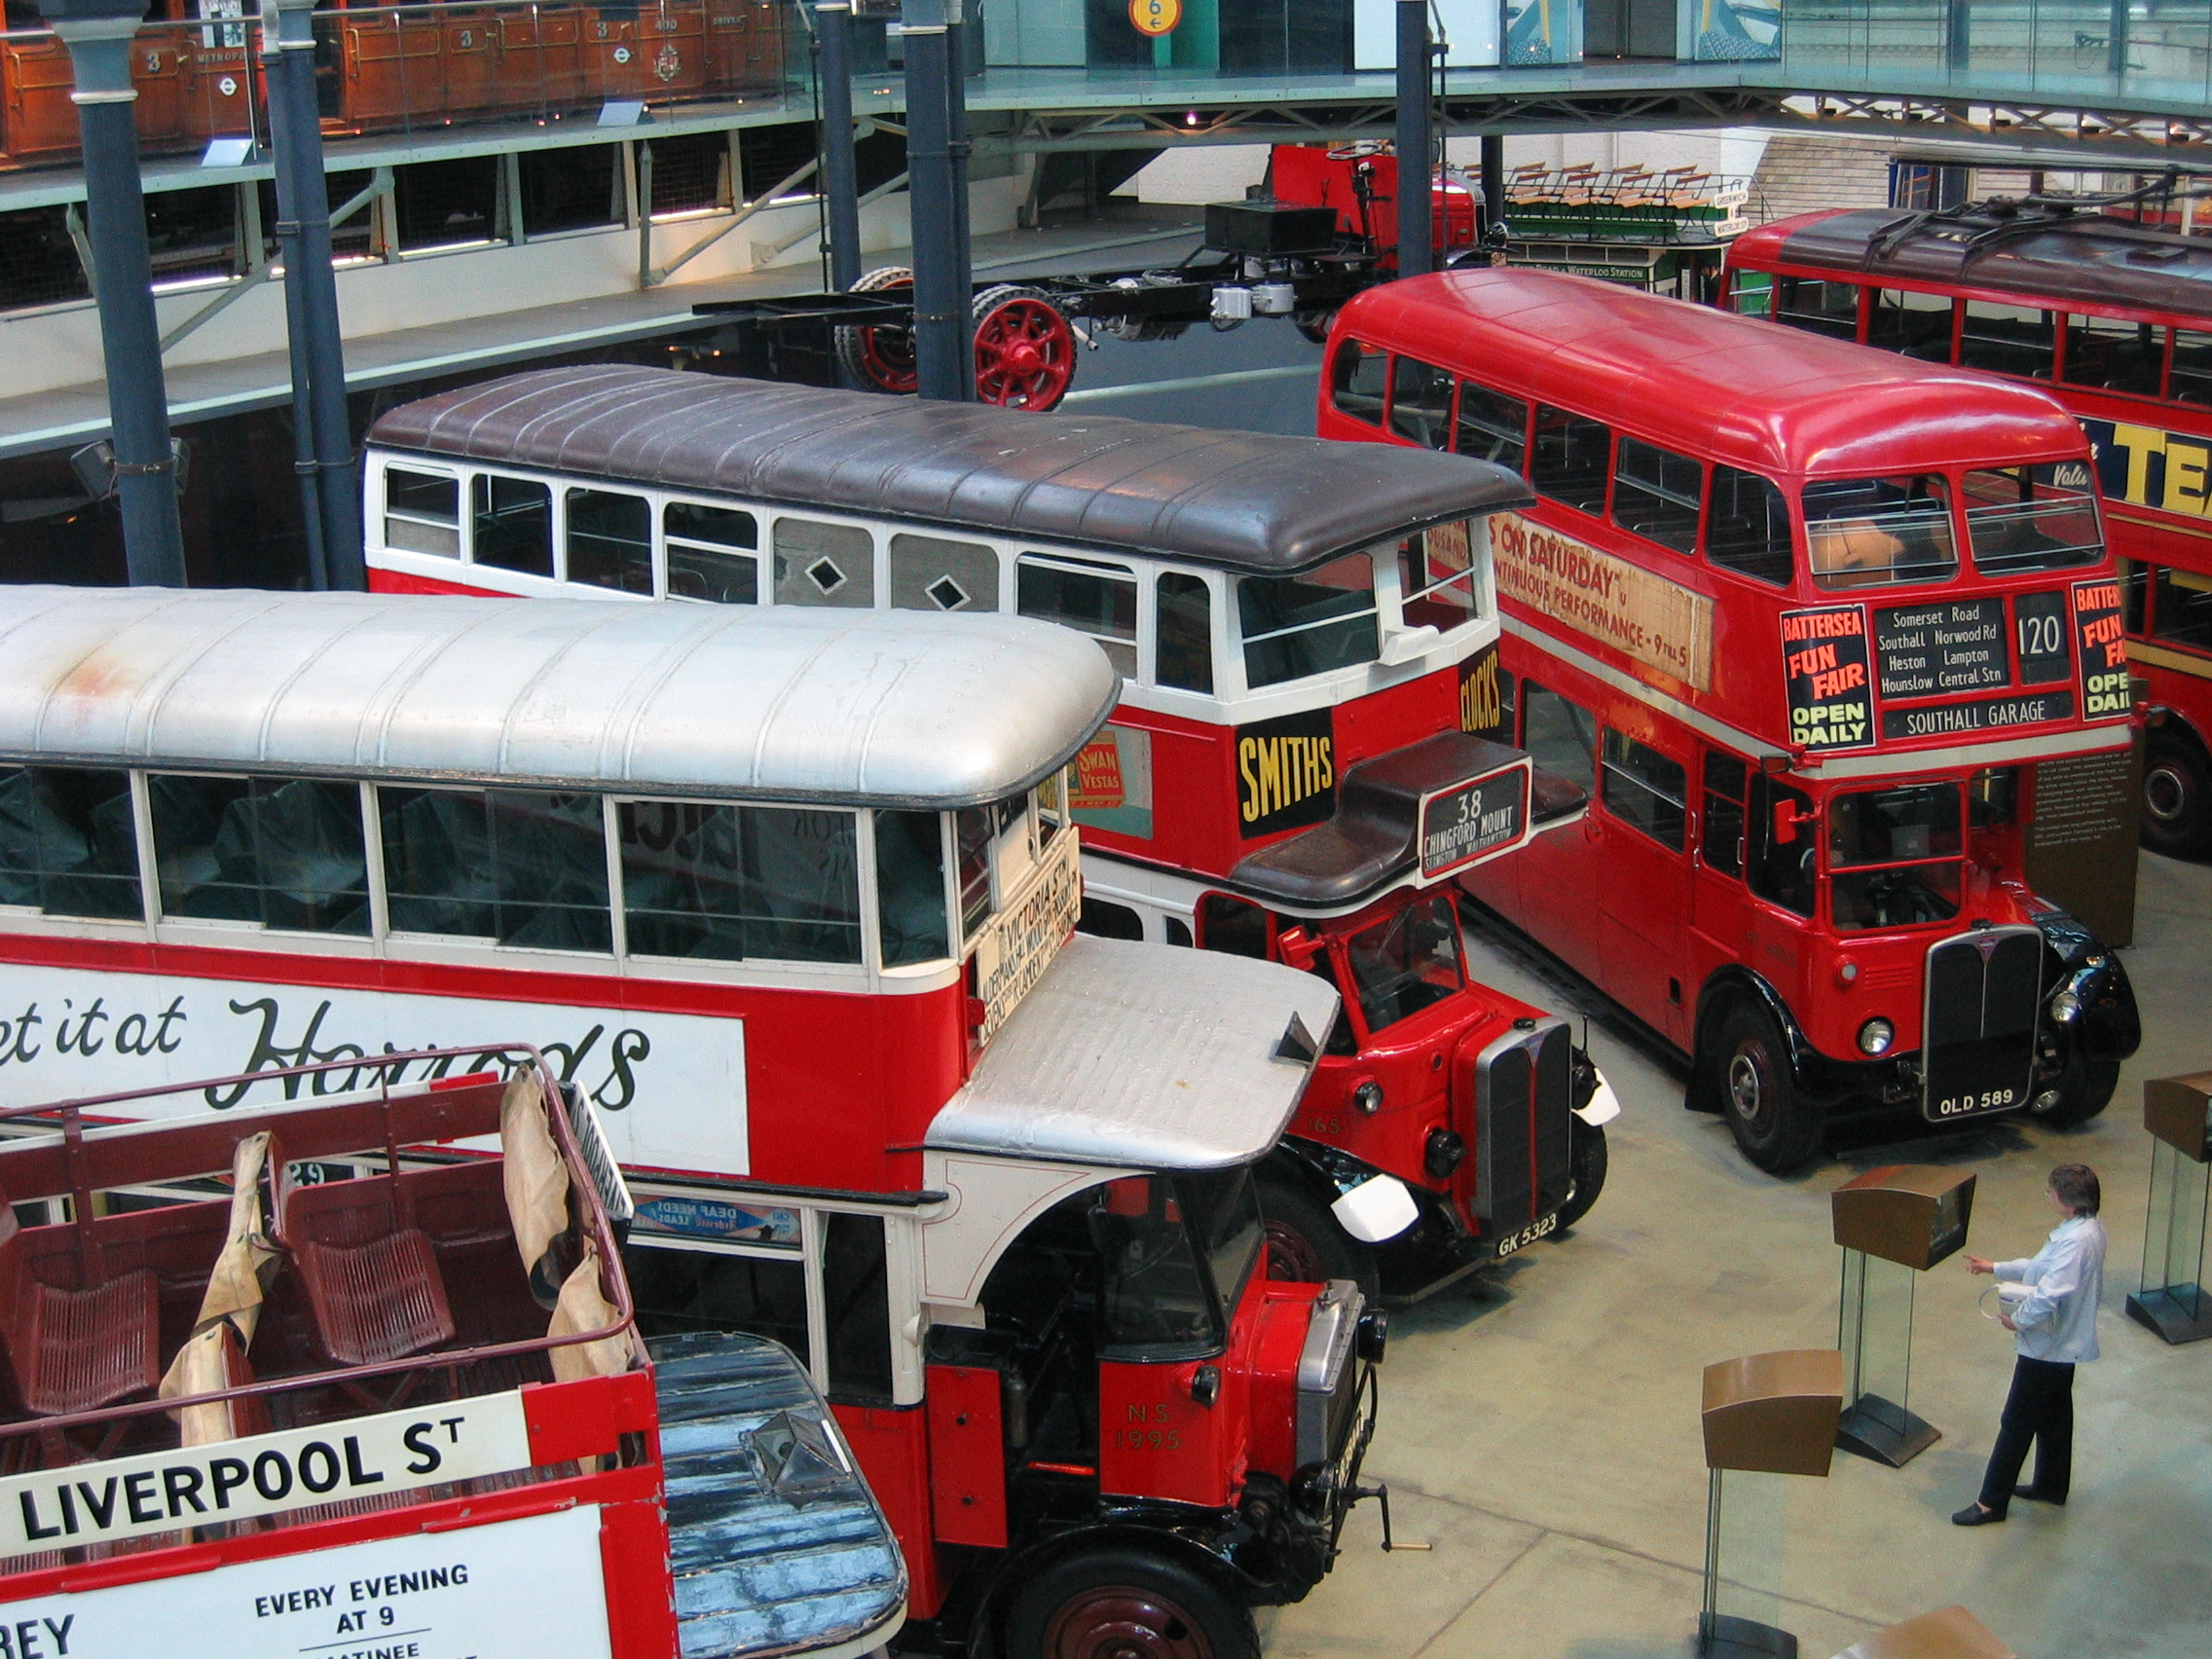 London Transport Museum Gets Two Major New Galleries in 2018